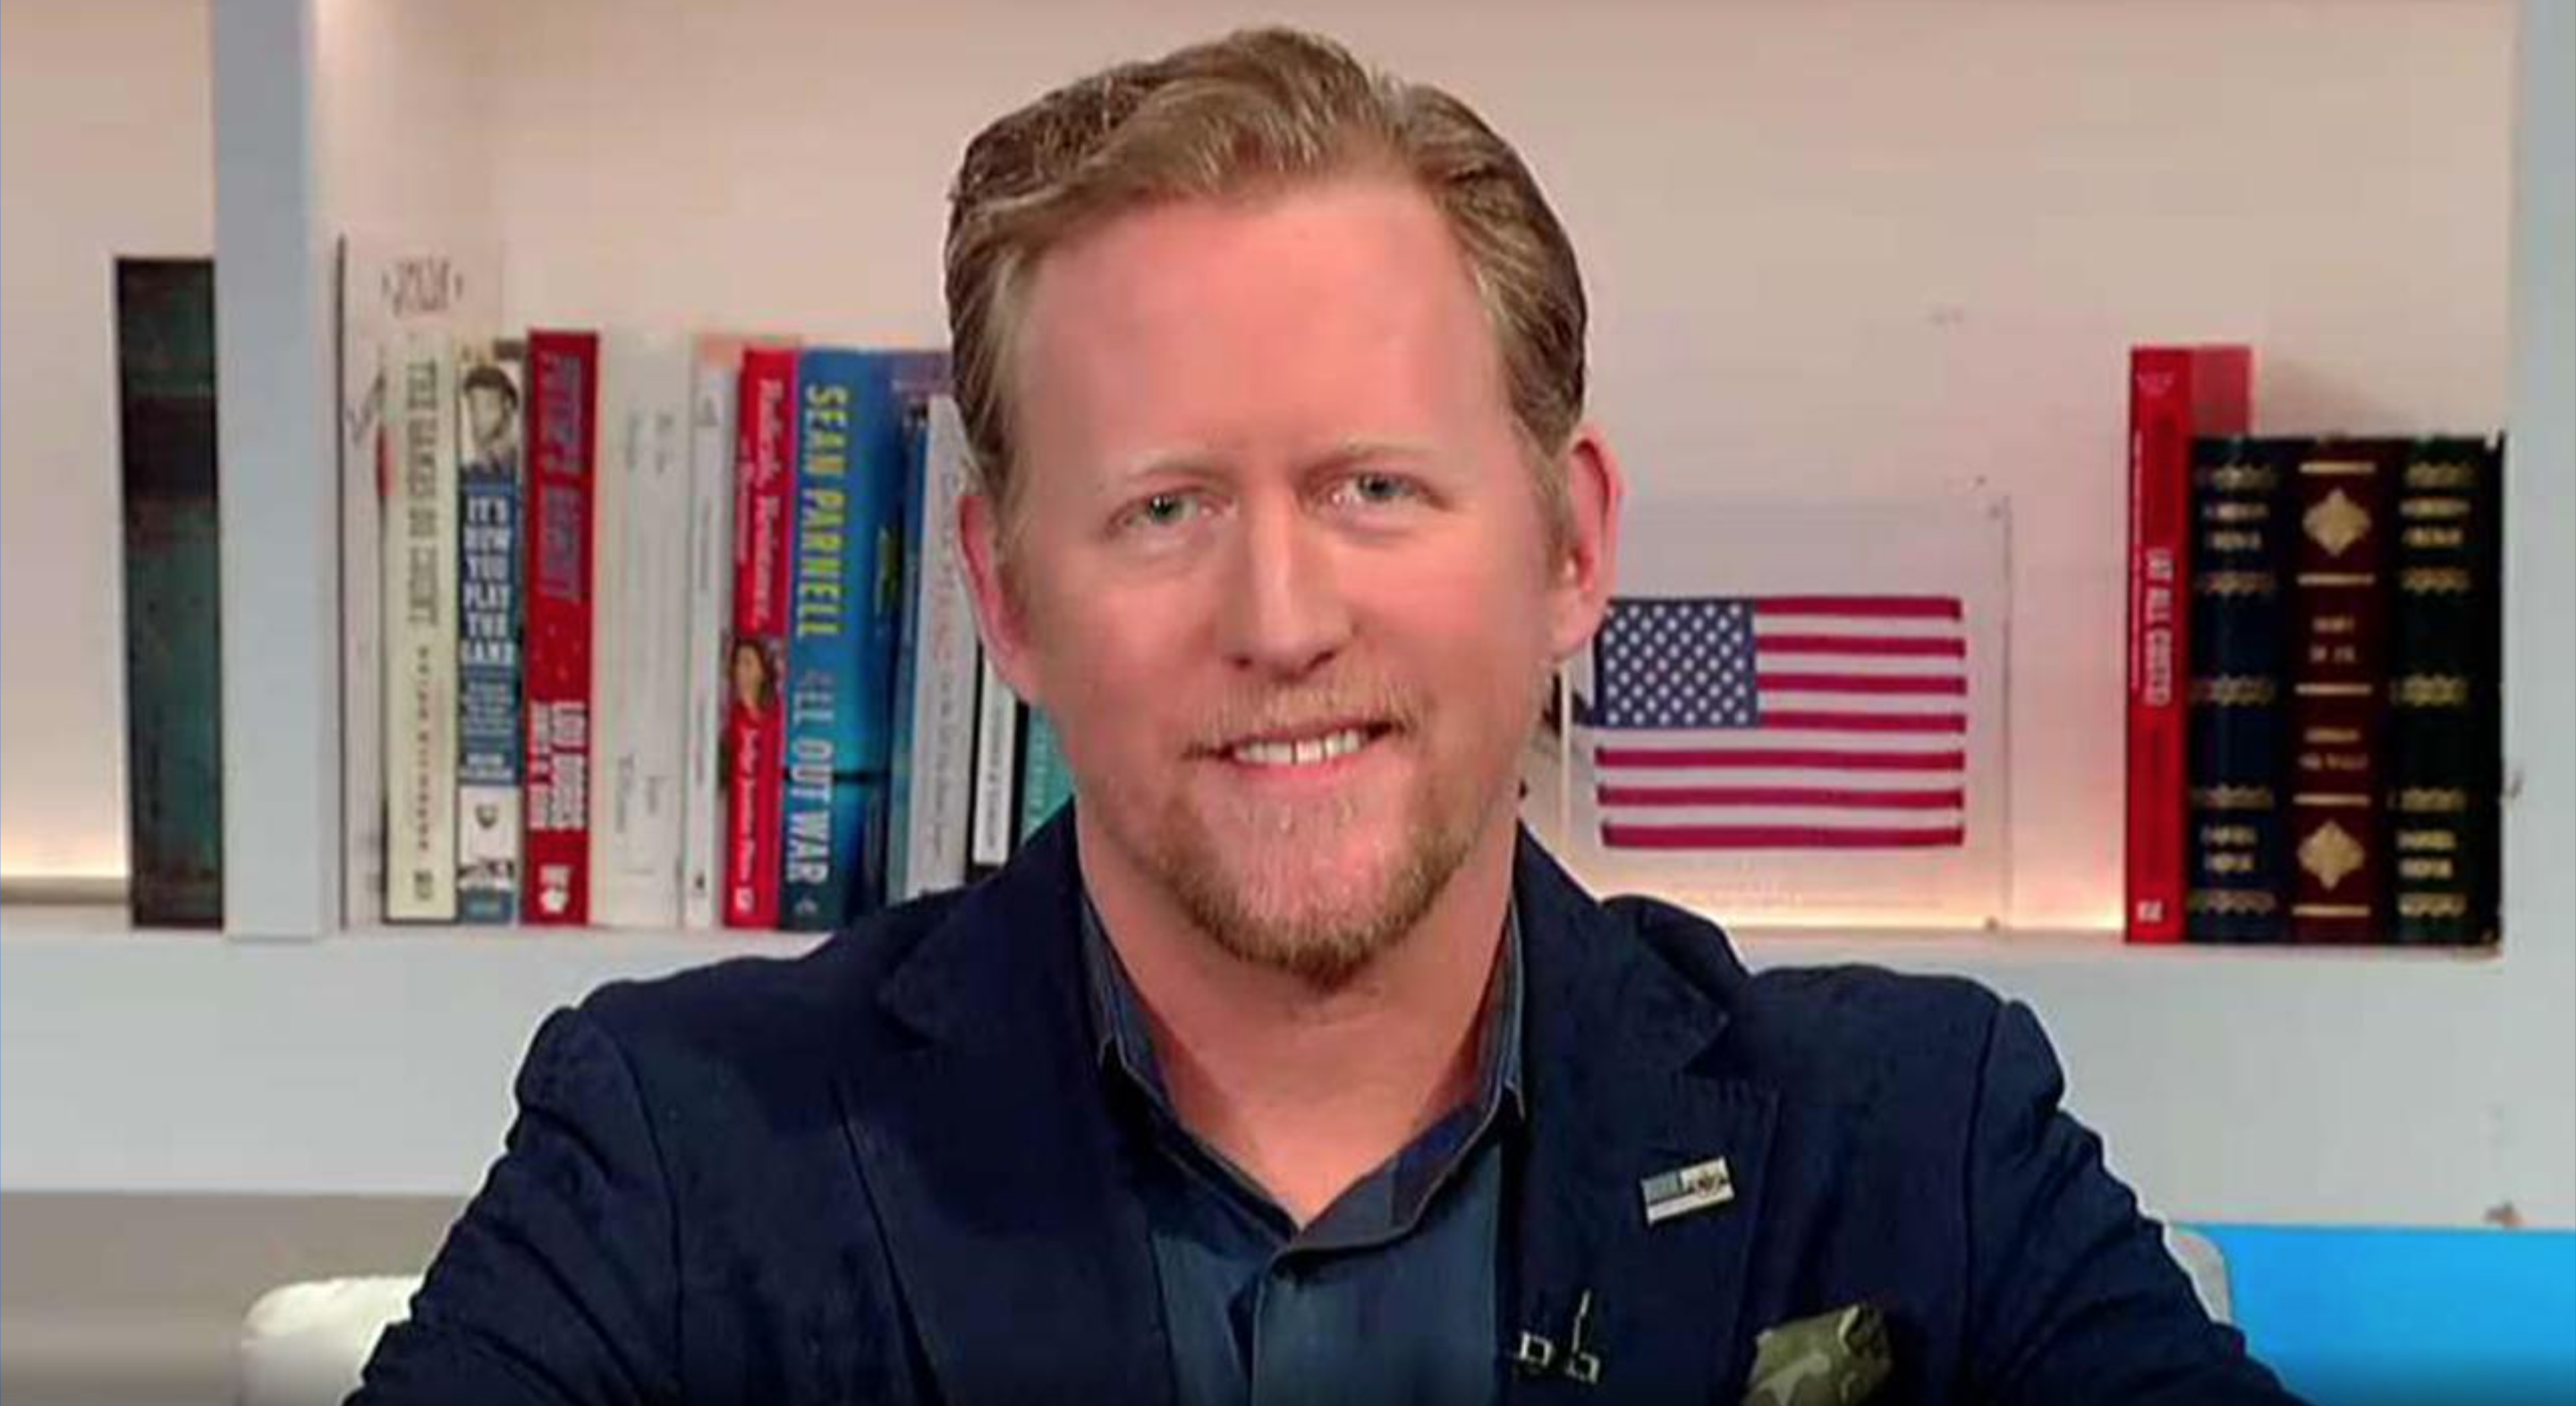 Westlake Legal Group Screen-Shot-2019-10-28-at-11.59.40-AM Rob O'Neill, the man who killed bin Laden, praises US special forces who conducted al-Baghdadi raid Joshua Nelson fox-news/shows/fox-friends fox-news/media/fox-news-flash fox news fnc/media fnc fc436f59-a089-5269-8a79-5dd586452c8b article